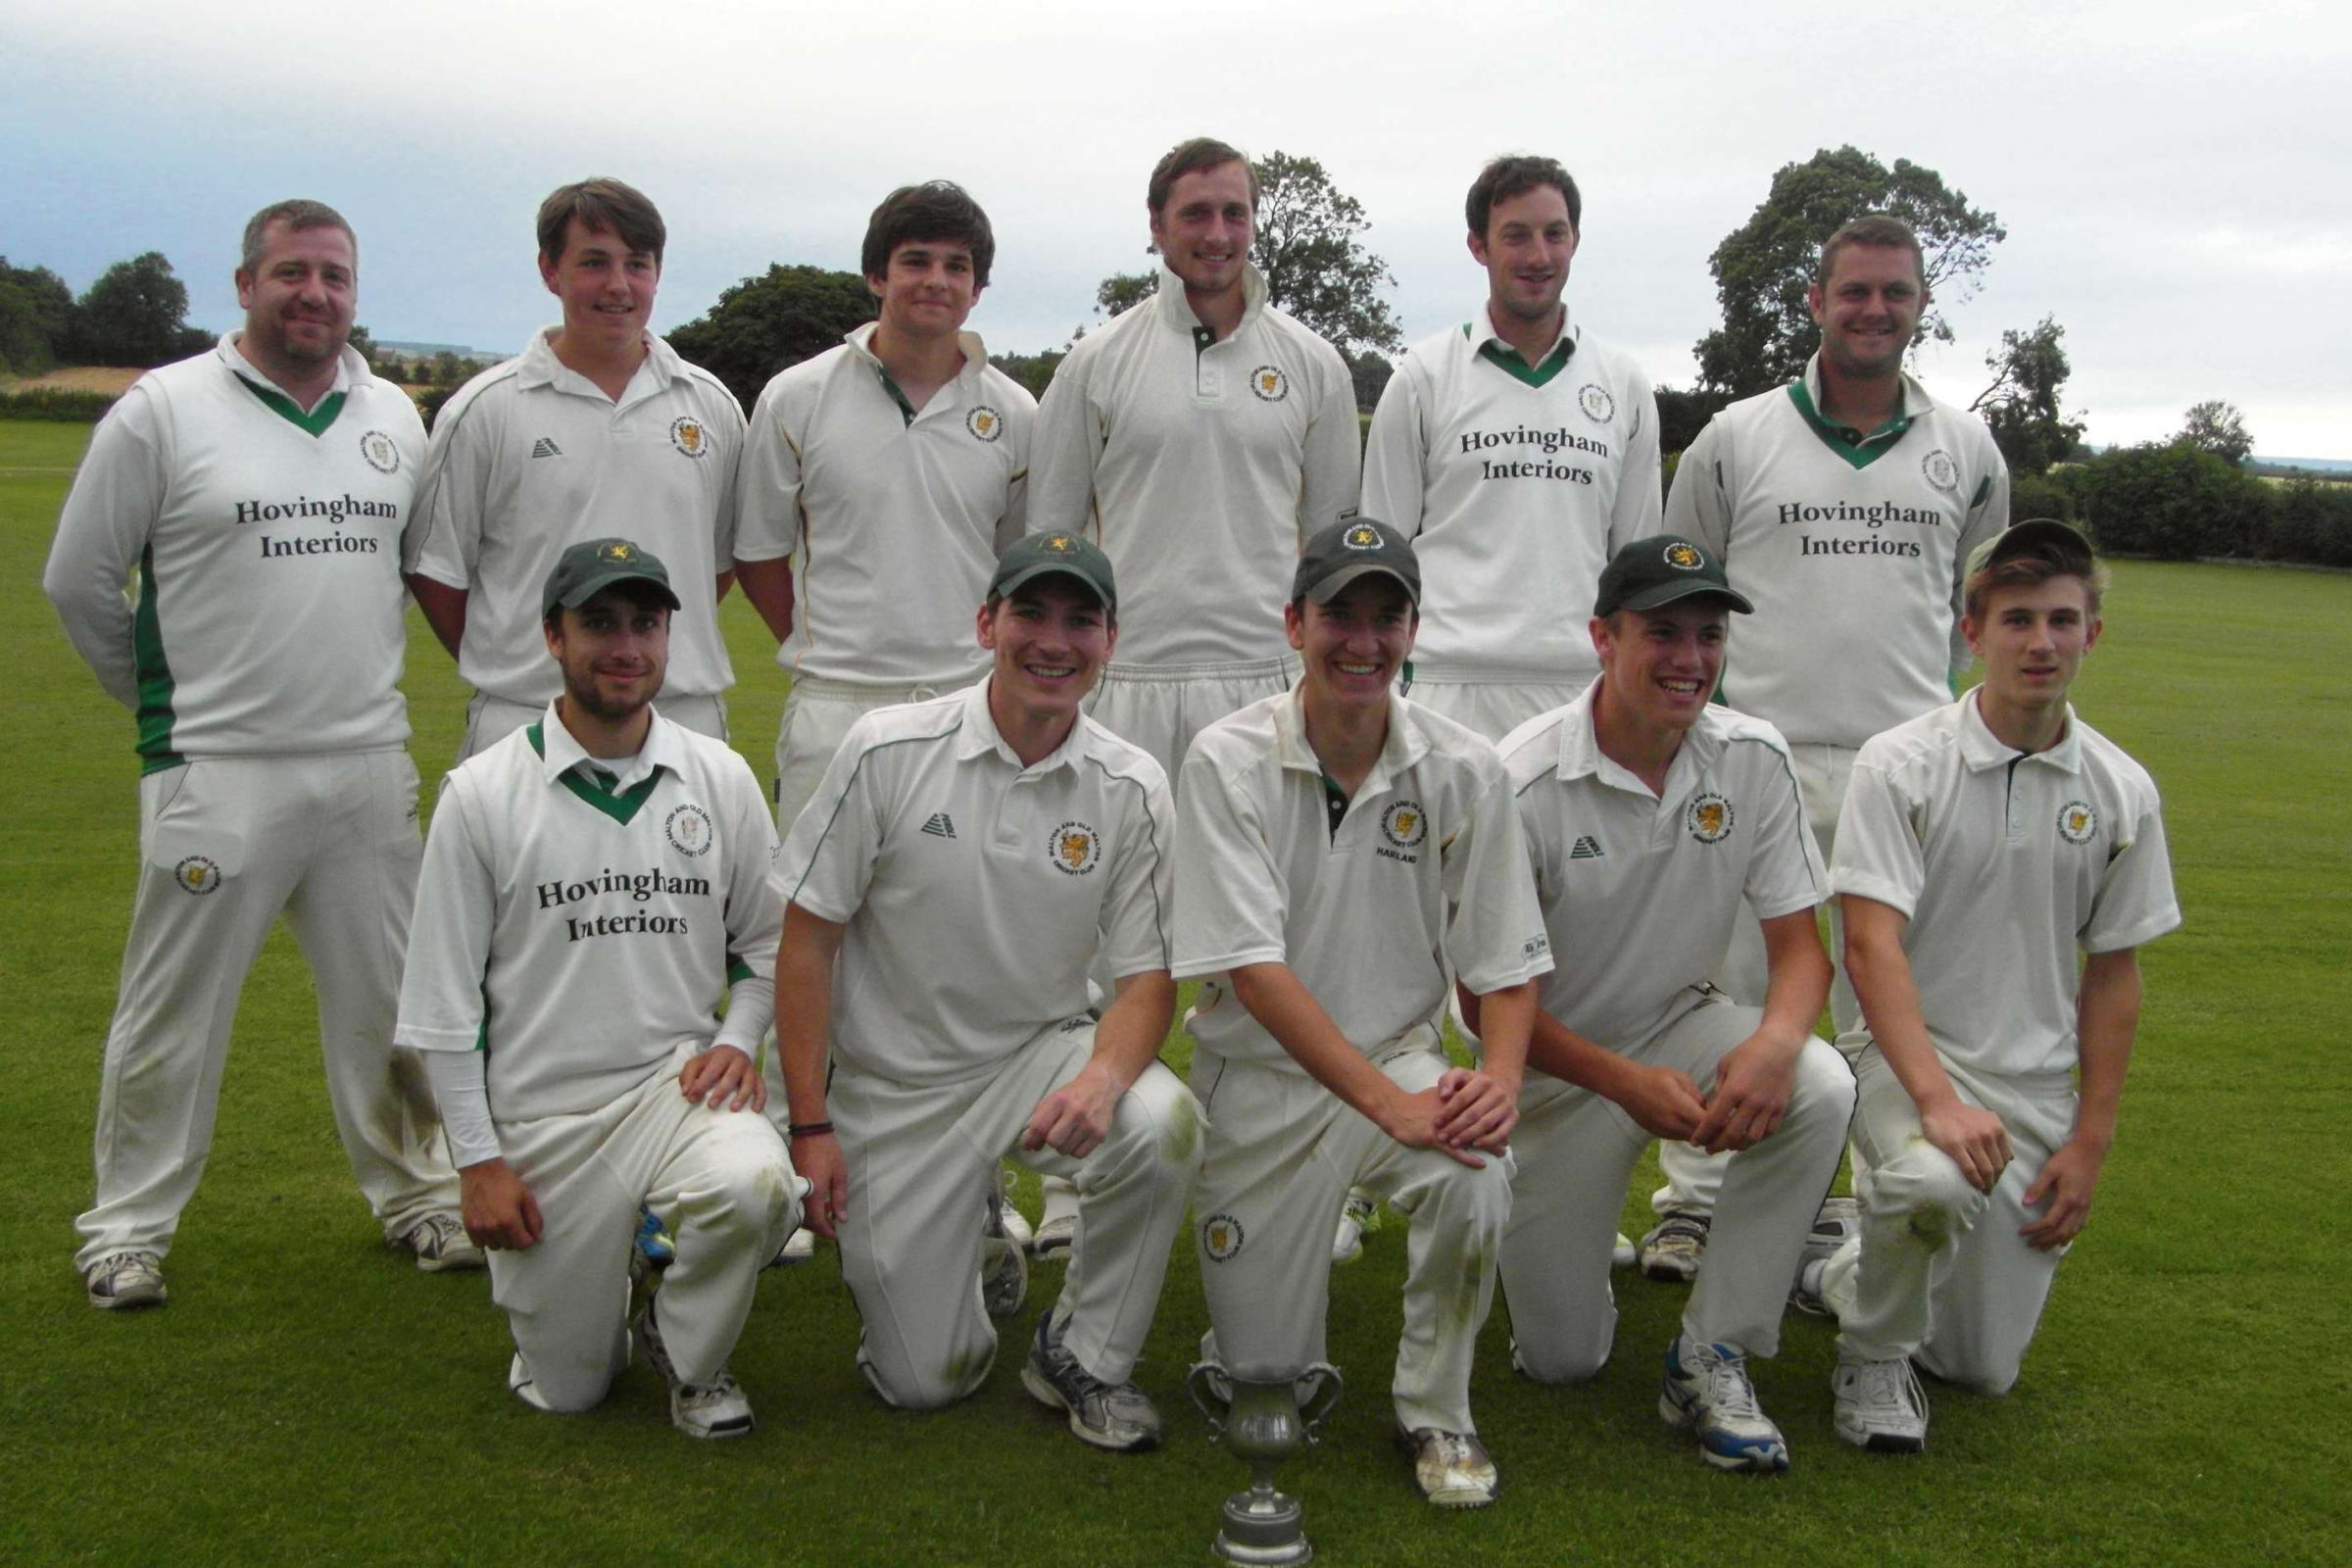 Division One Cup winners Malton & Old Malton. Back row, from left to right: Stuart Watmore, Toby Sercombe, Josh Raines, Stephen Linsley, Jimmy Baxter, Wayne Dawson. Front, from left: Tom Audsley, Daniel Foxton, Shaun Harland, Ryan Gaughan, Oliver Varey